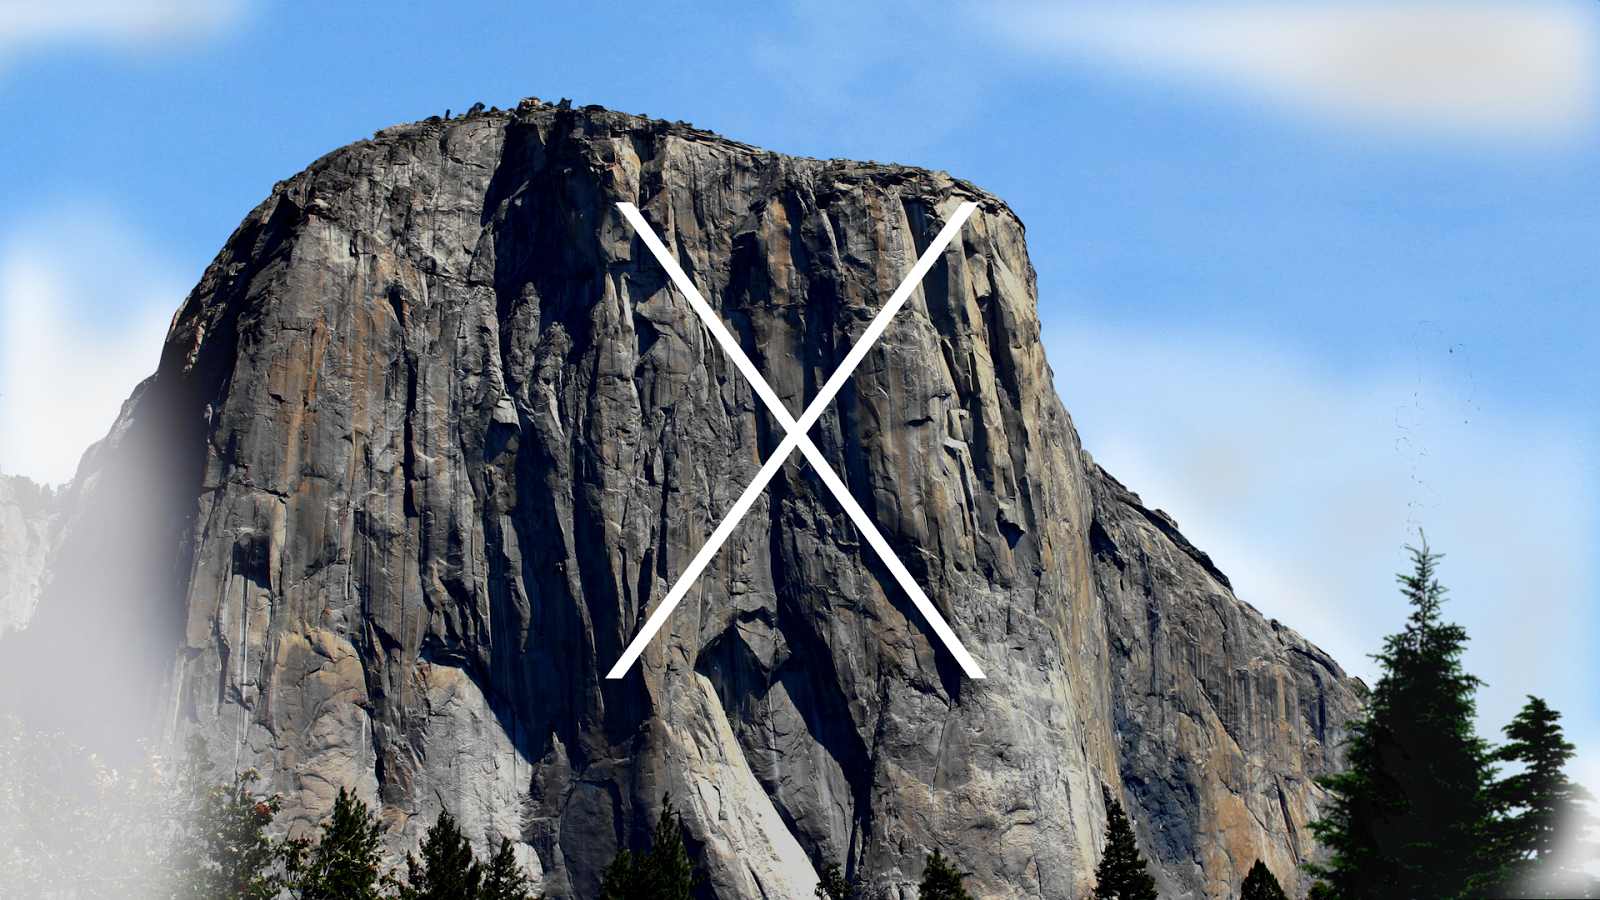 Osx Yosemite Wallpaper 1080p Wallpapersafari